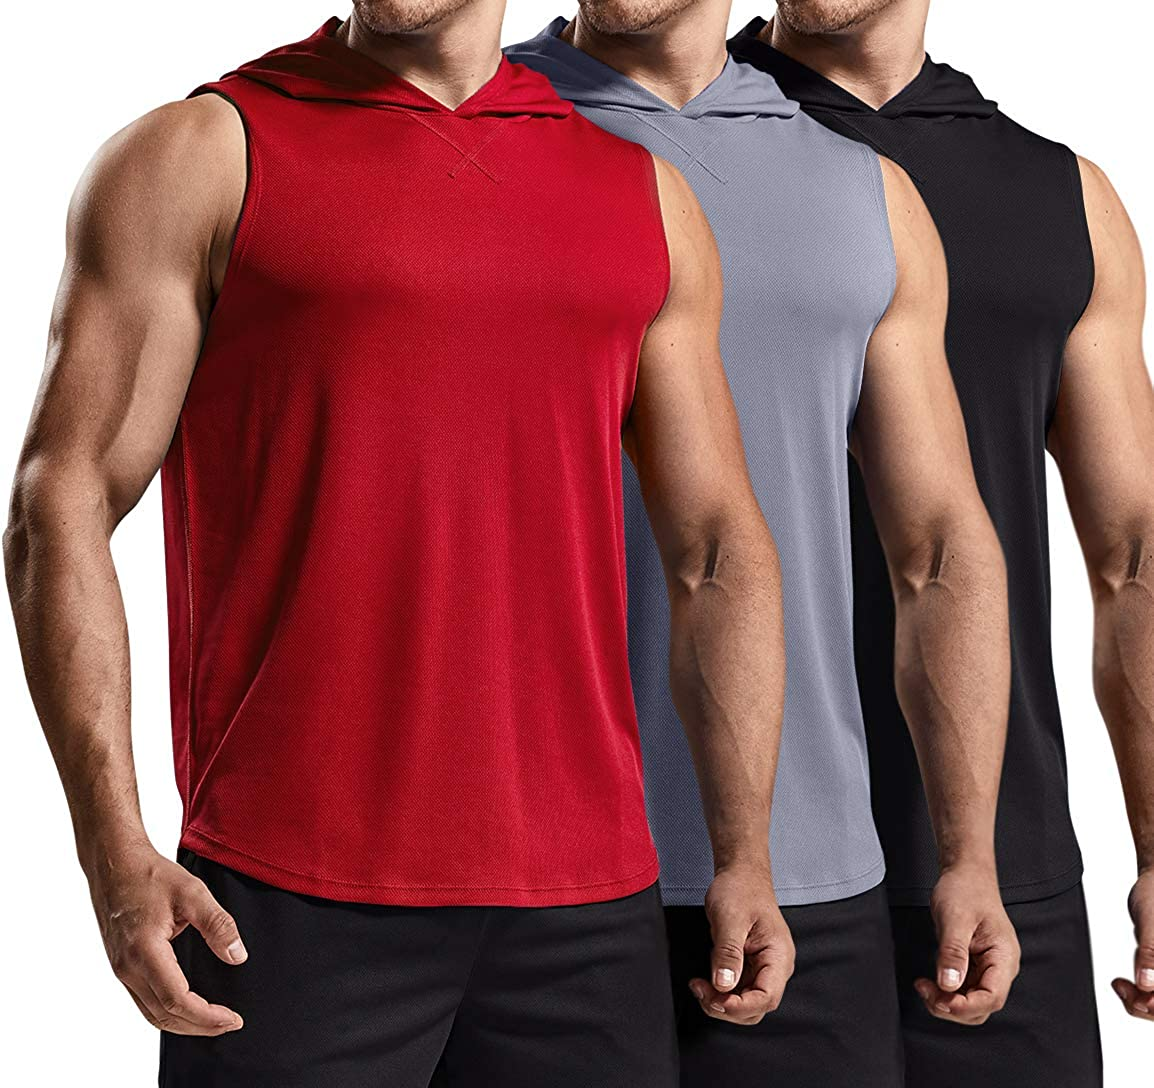 TSLA 3 Pack Men's Muscle Tank with Hoodie, Cool Dry Active Athletic Running Shirts, Lightweight Workout Gym Performance Top